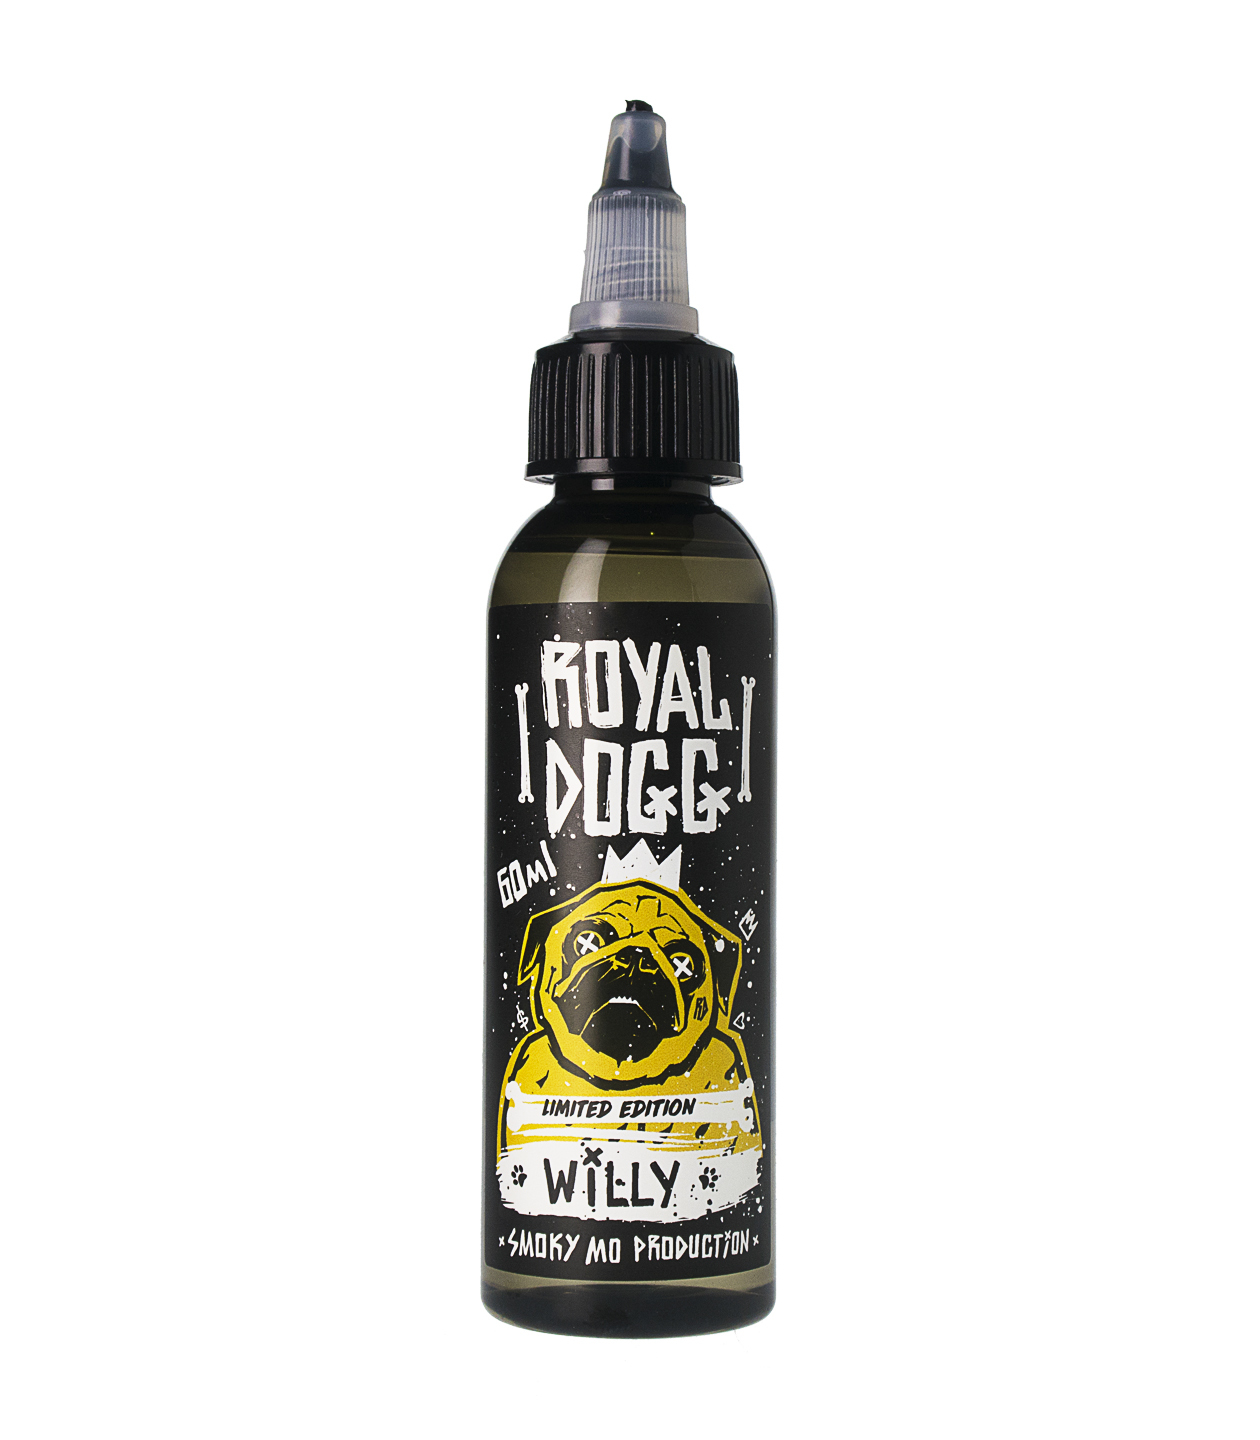 Royal Dogg: Жидкость Willy Limited Edition, 60 мл фото #1